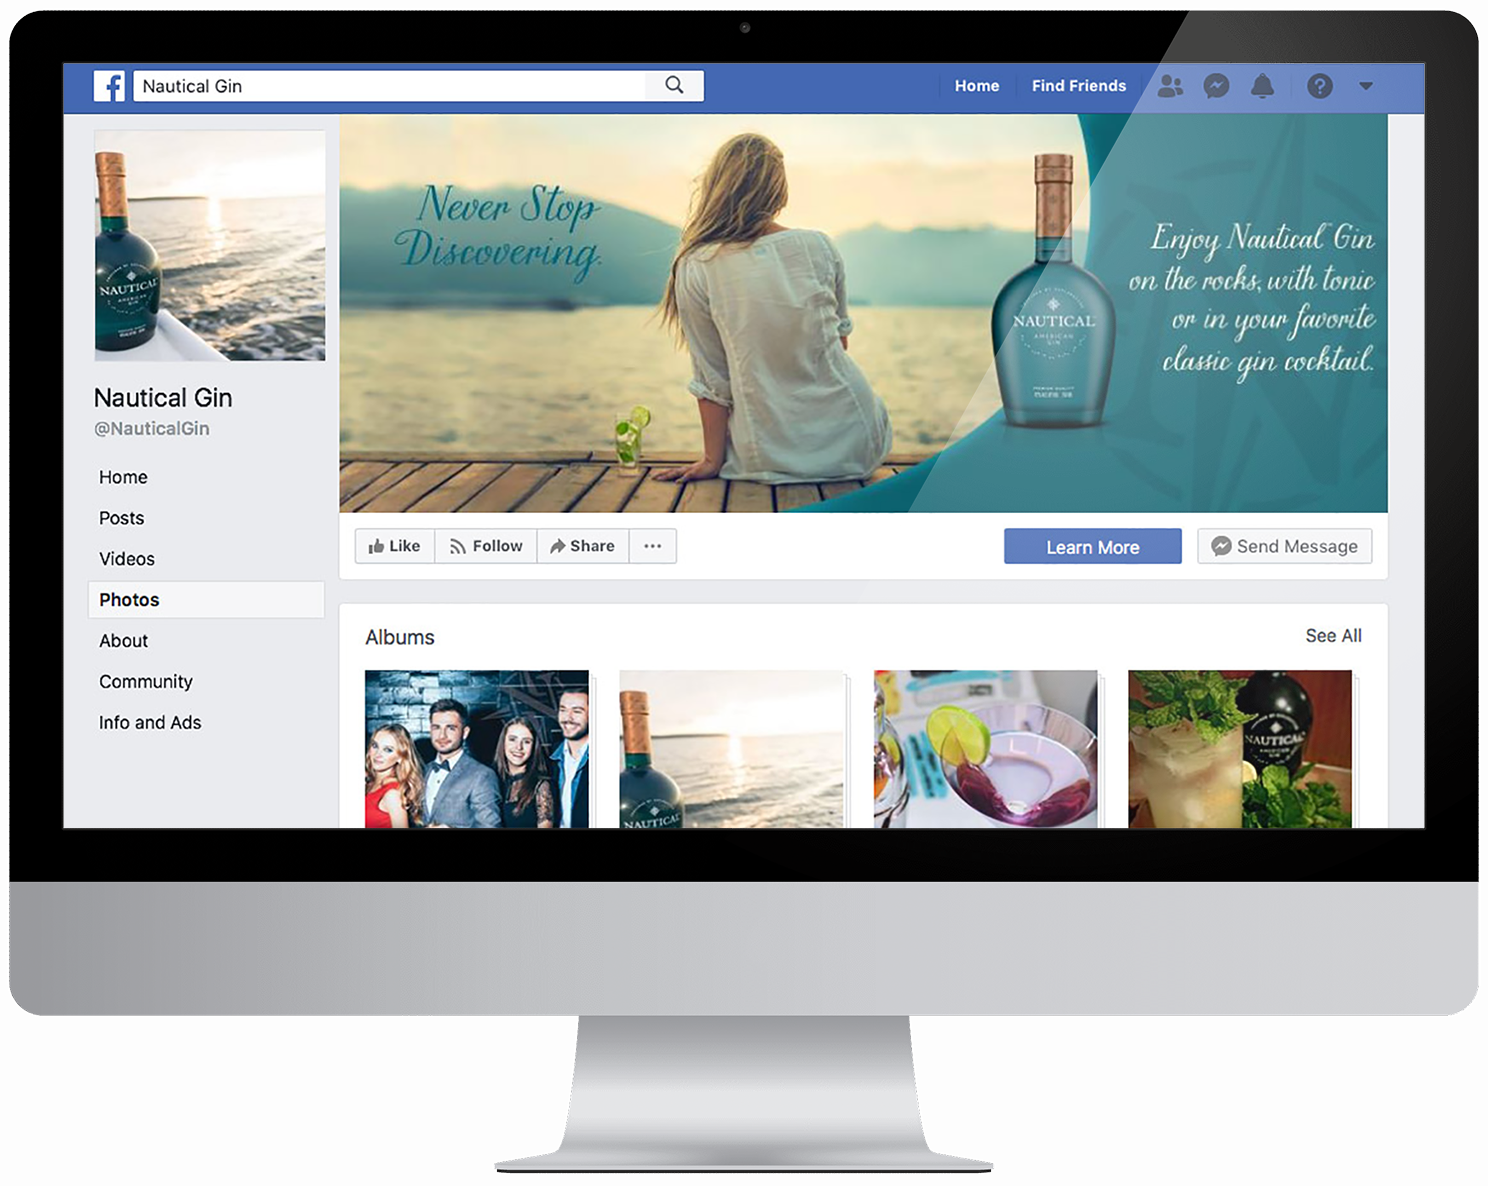 Computer showing Nautical Gin facebook homepage